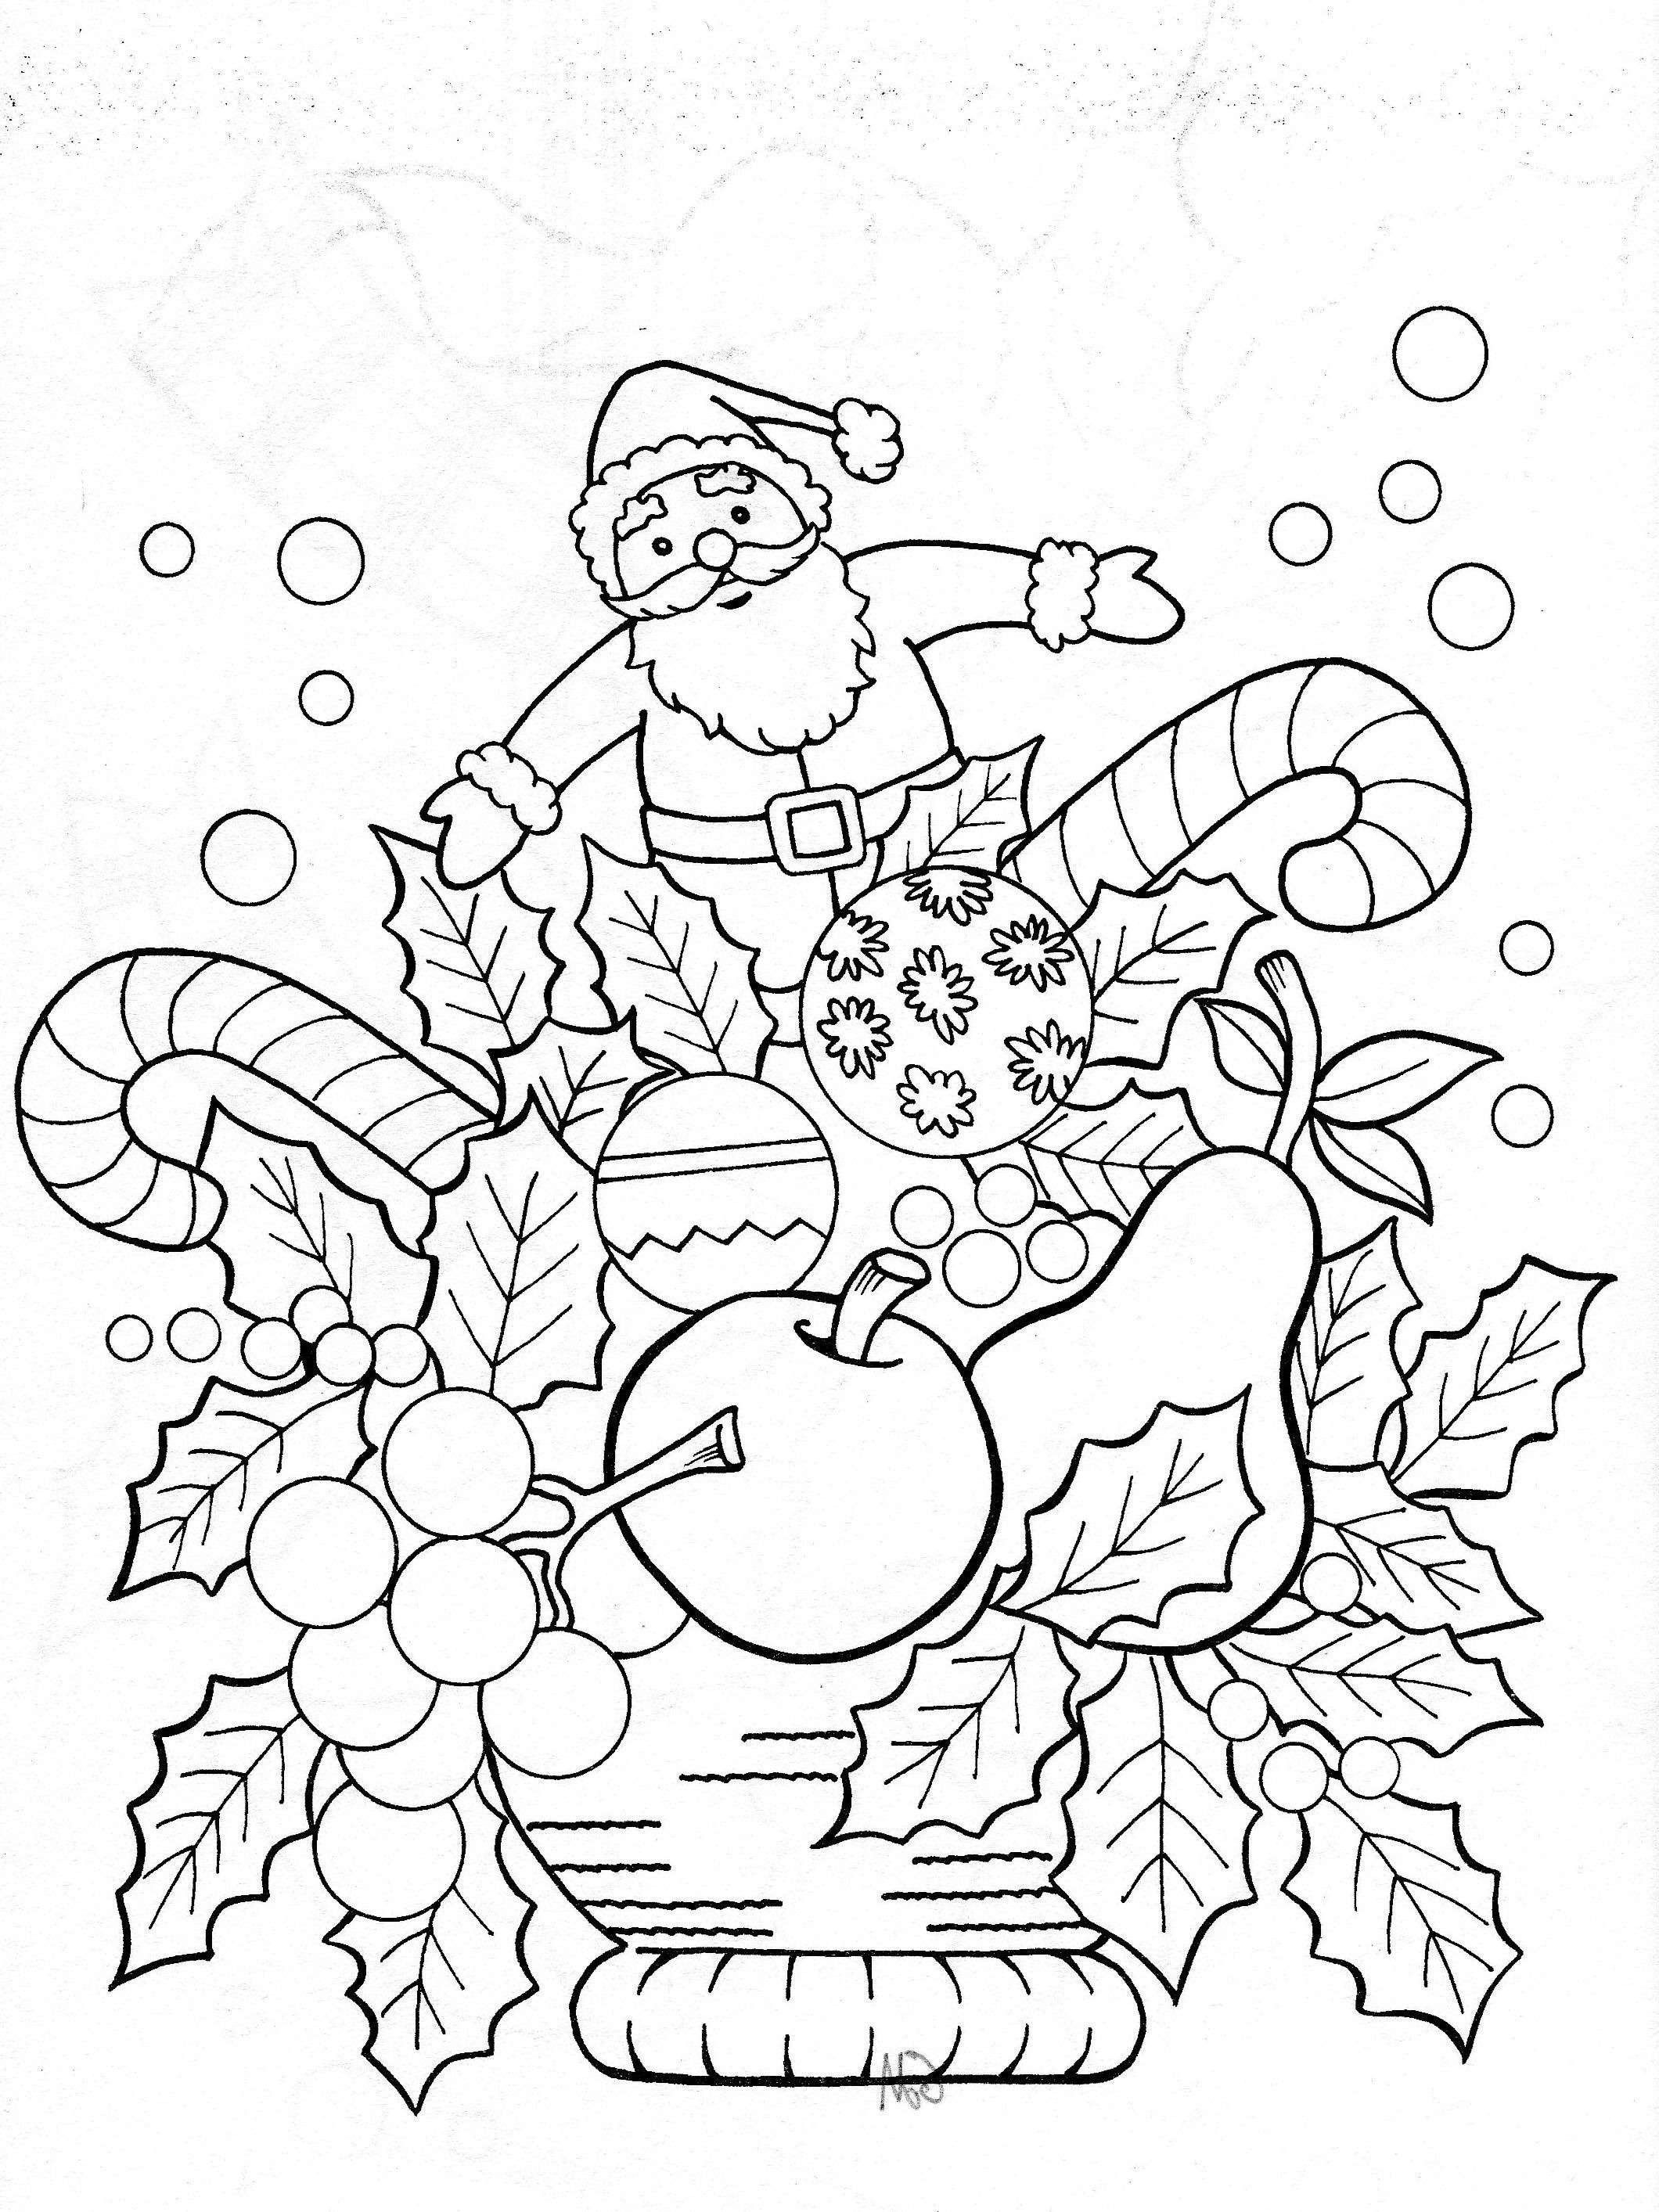 28 Awesome Image Of Interesting Coloring Page